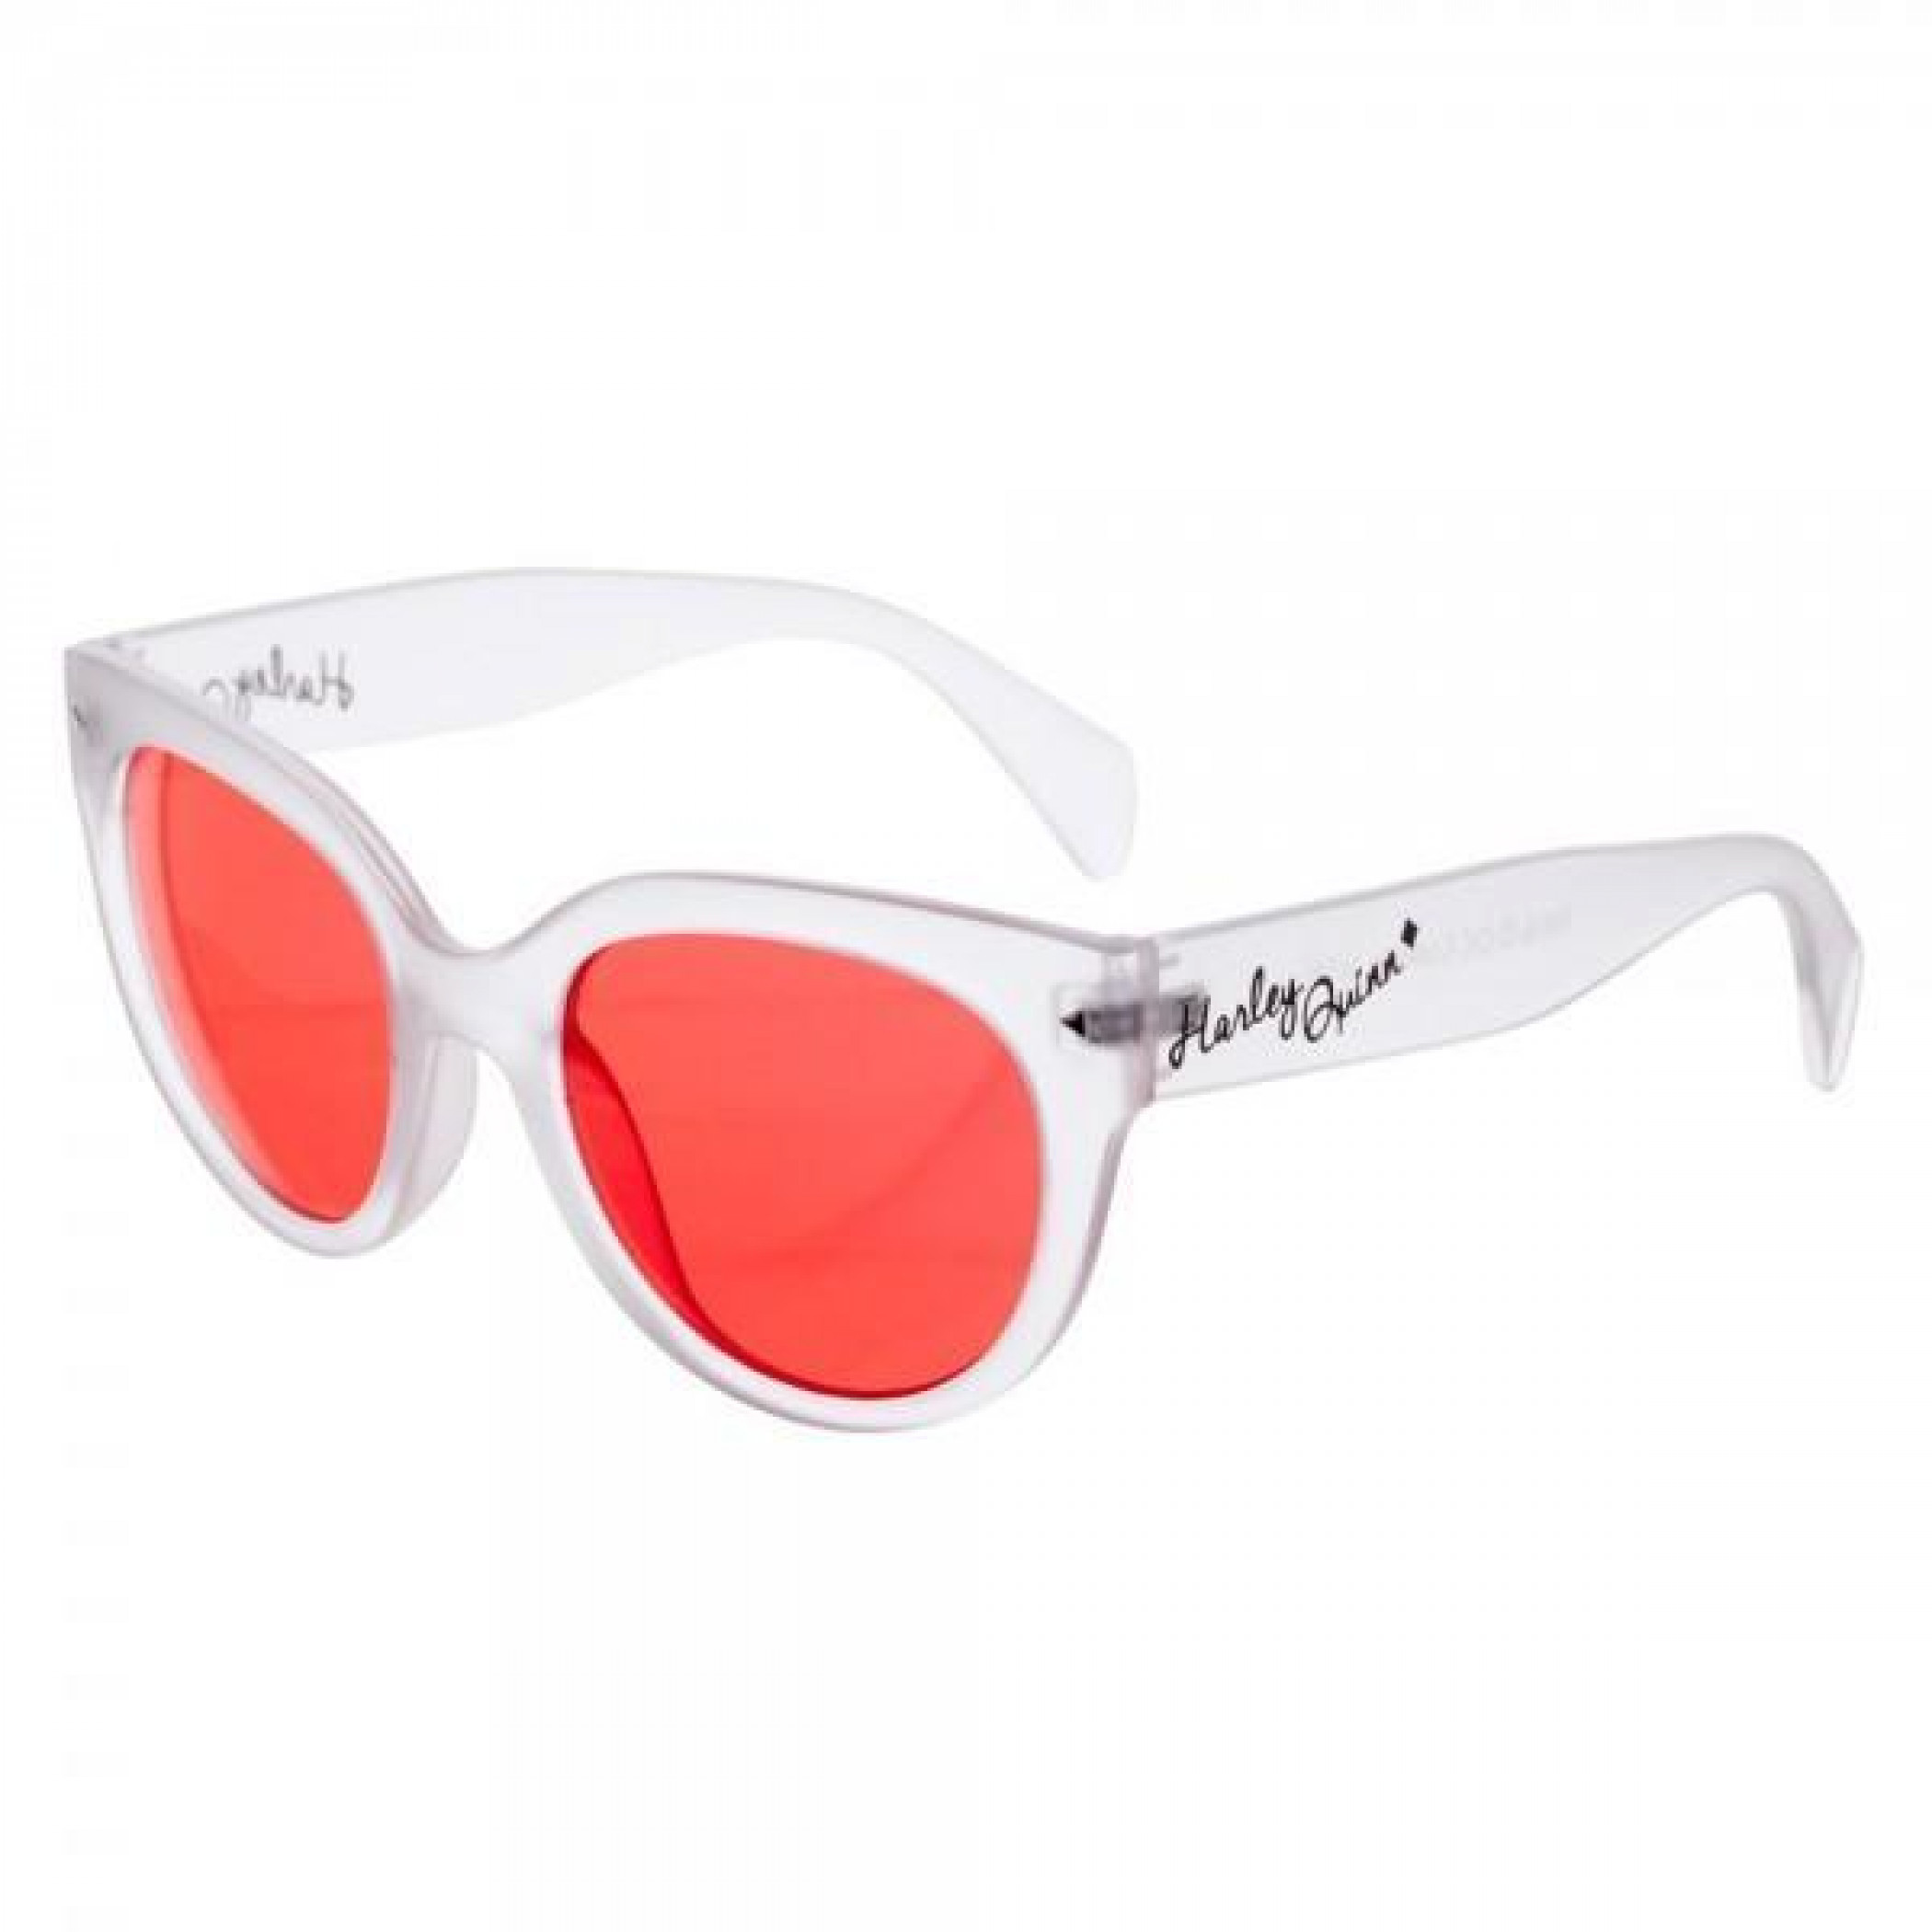 Harley Quinn Signature Sunglasses with Pouch